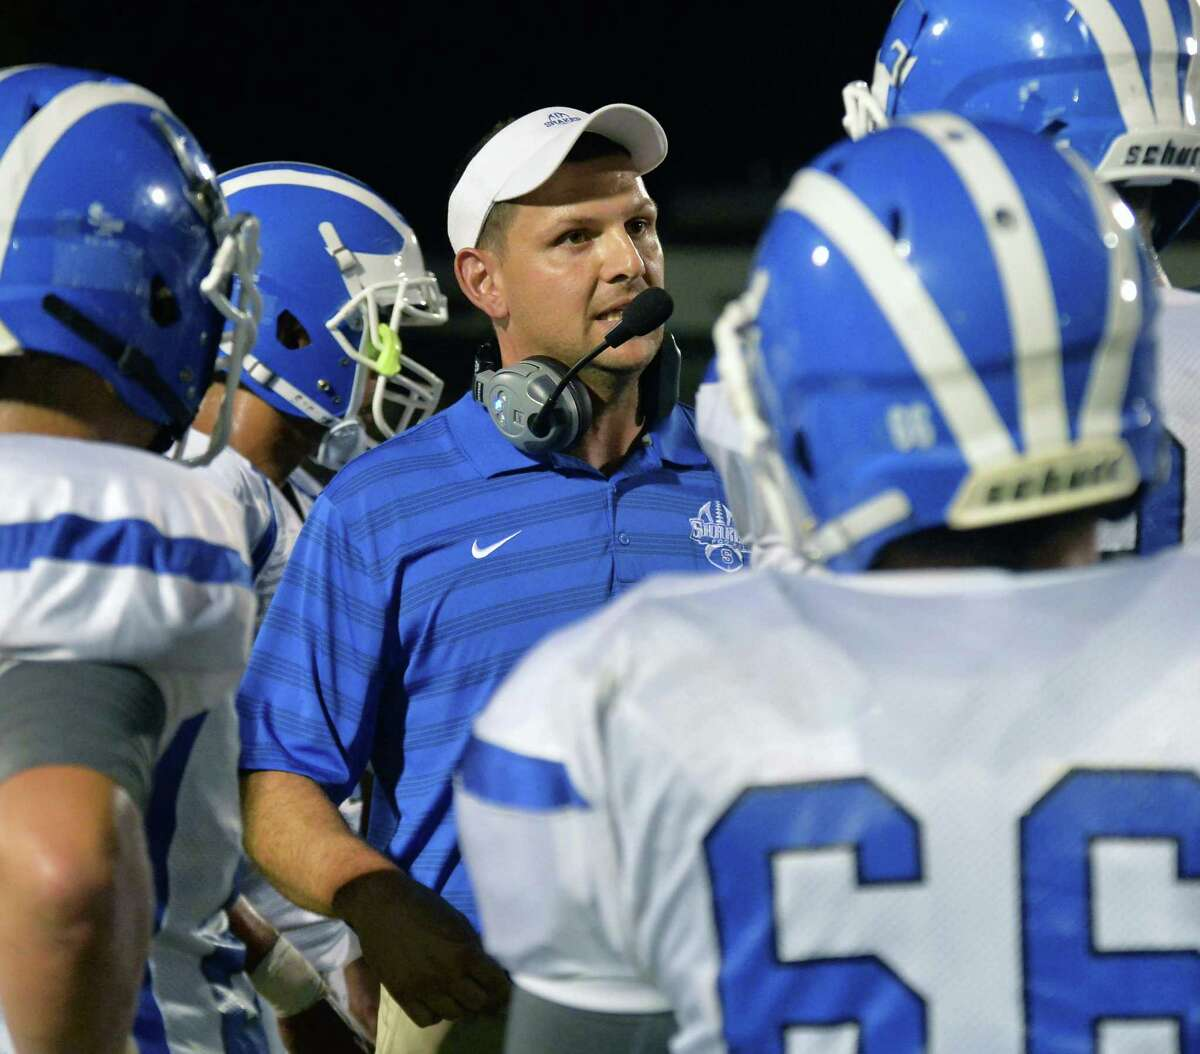 Shaker head coach Greg Sheeler with players during a time out in Saturday night's game against Shenendehowa High Sept. 11, 2015 in Clifton Park, NY. (John Carl D'Annibale / Times Union)